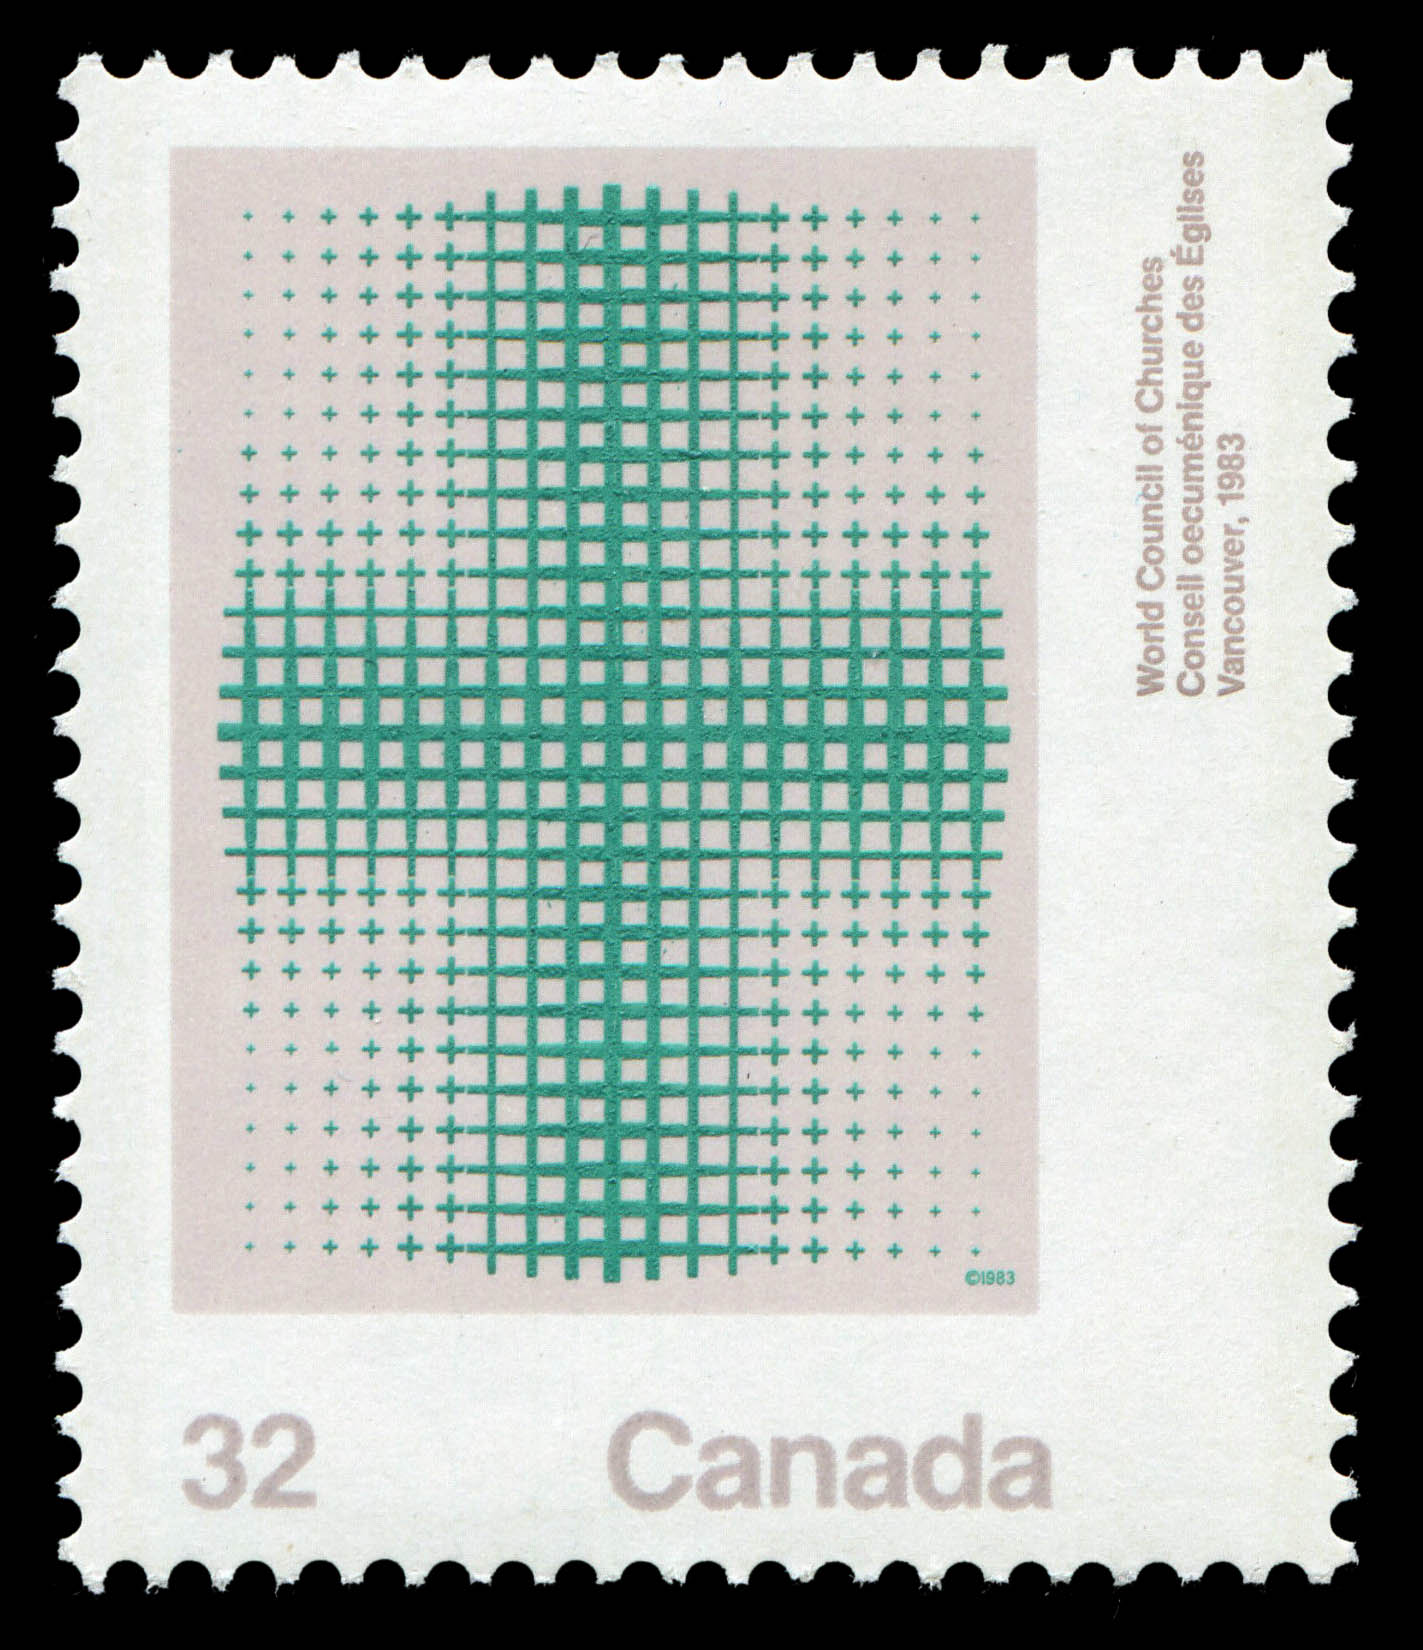 World Council of Churches, Vancouver, 1983 Canada Postage Stamp